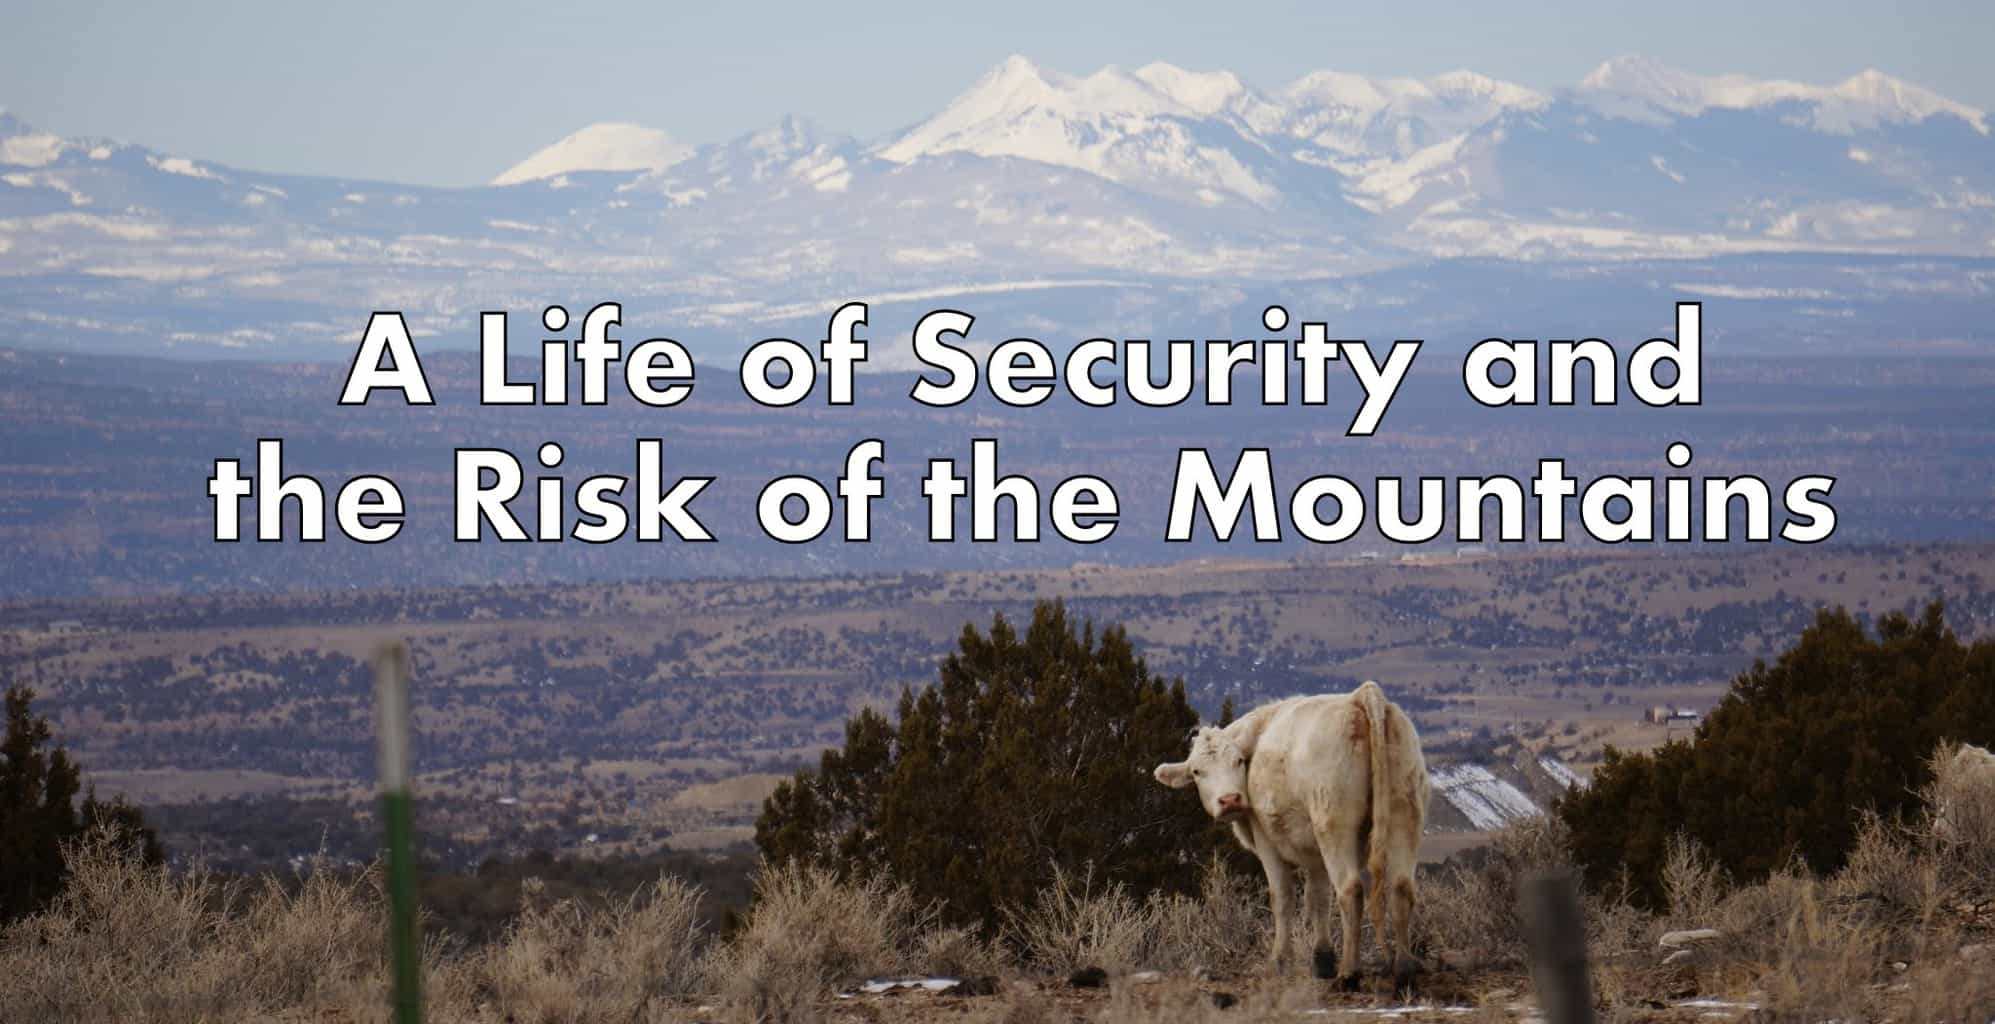 A Life of Security and the Risk of the Mountains